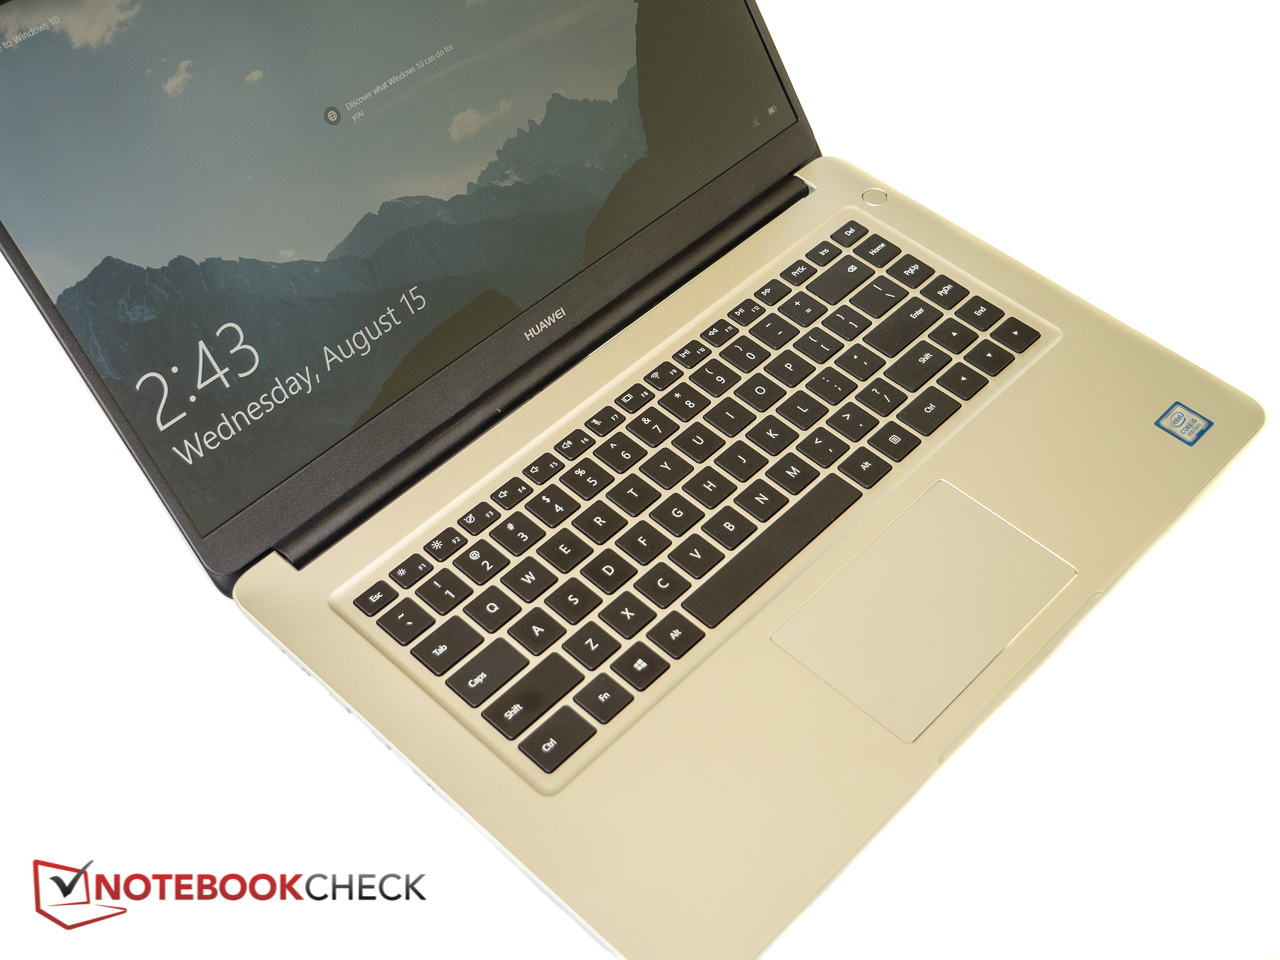 Huawei MateBook D 53010BAJ (8250U, MX150) Laptop Review